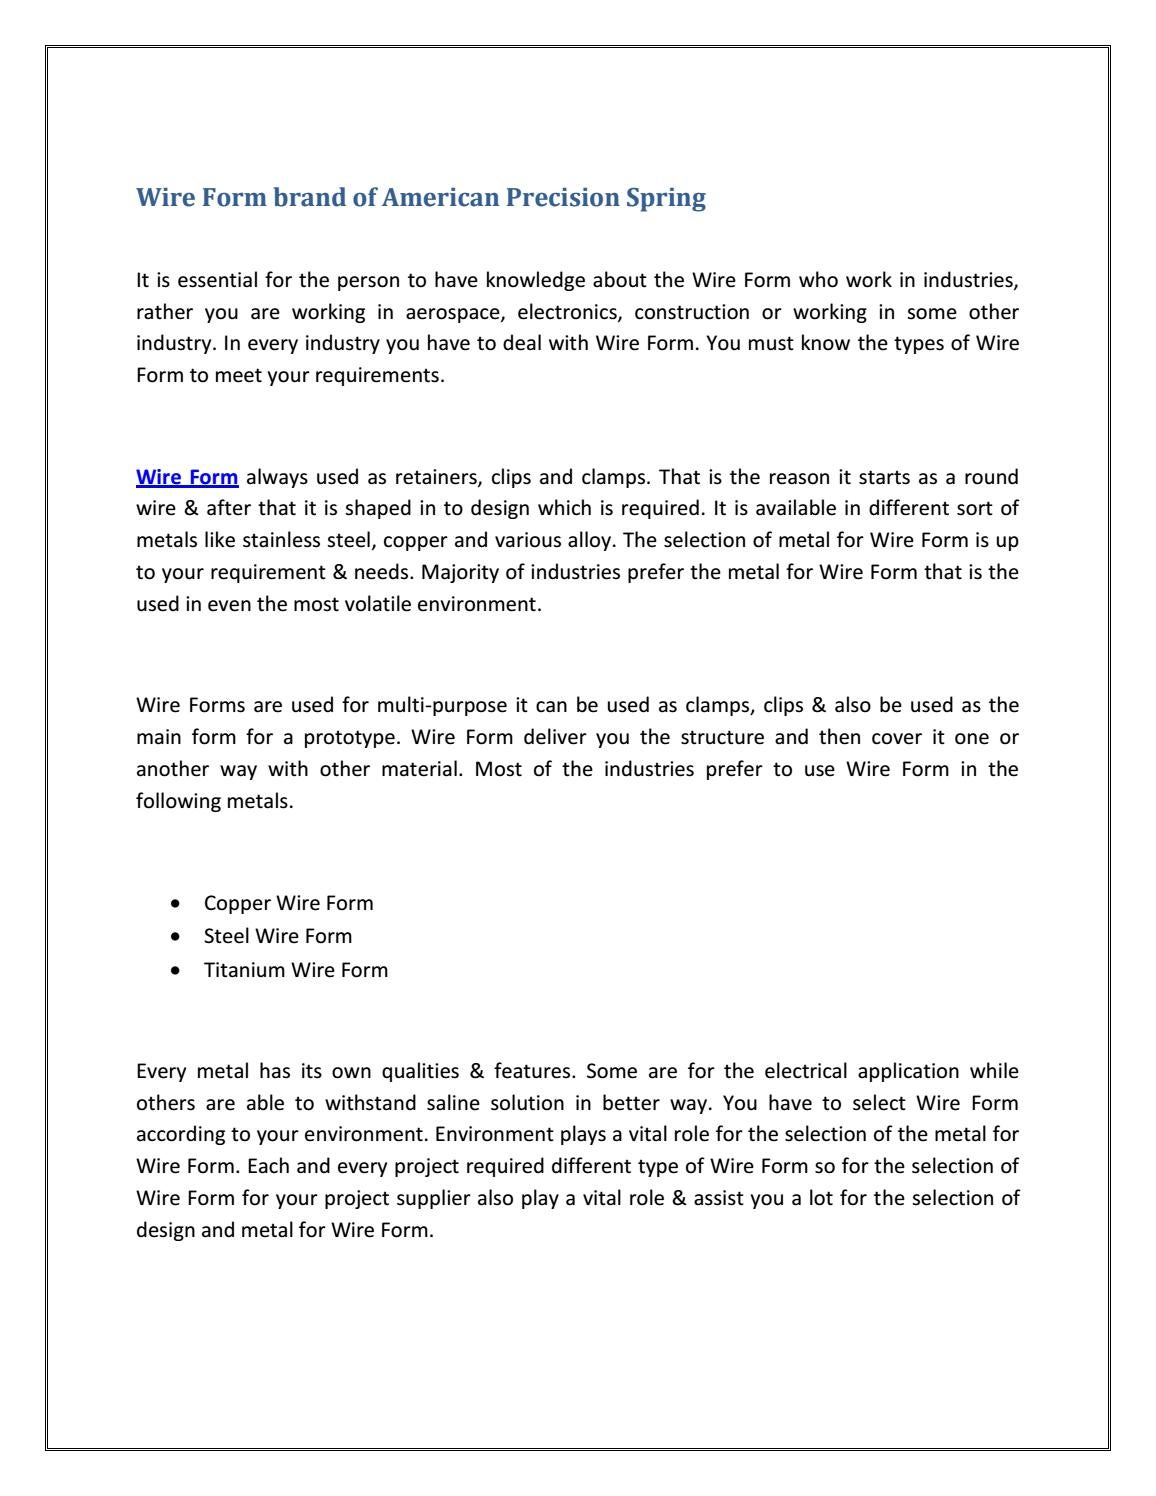 Wire form brand of american precision spring by APSpring - issuu